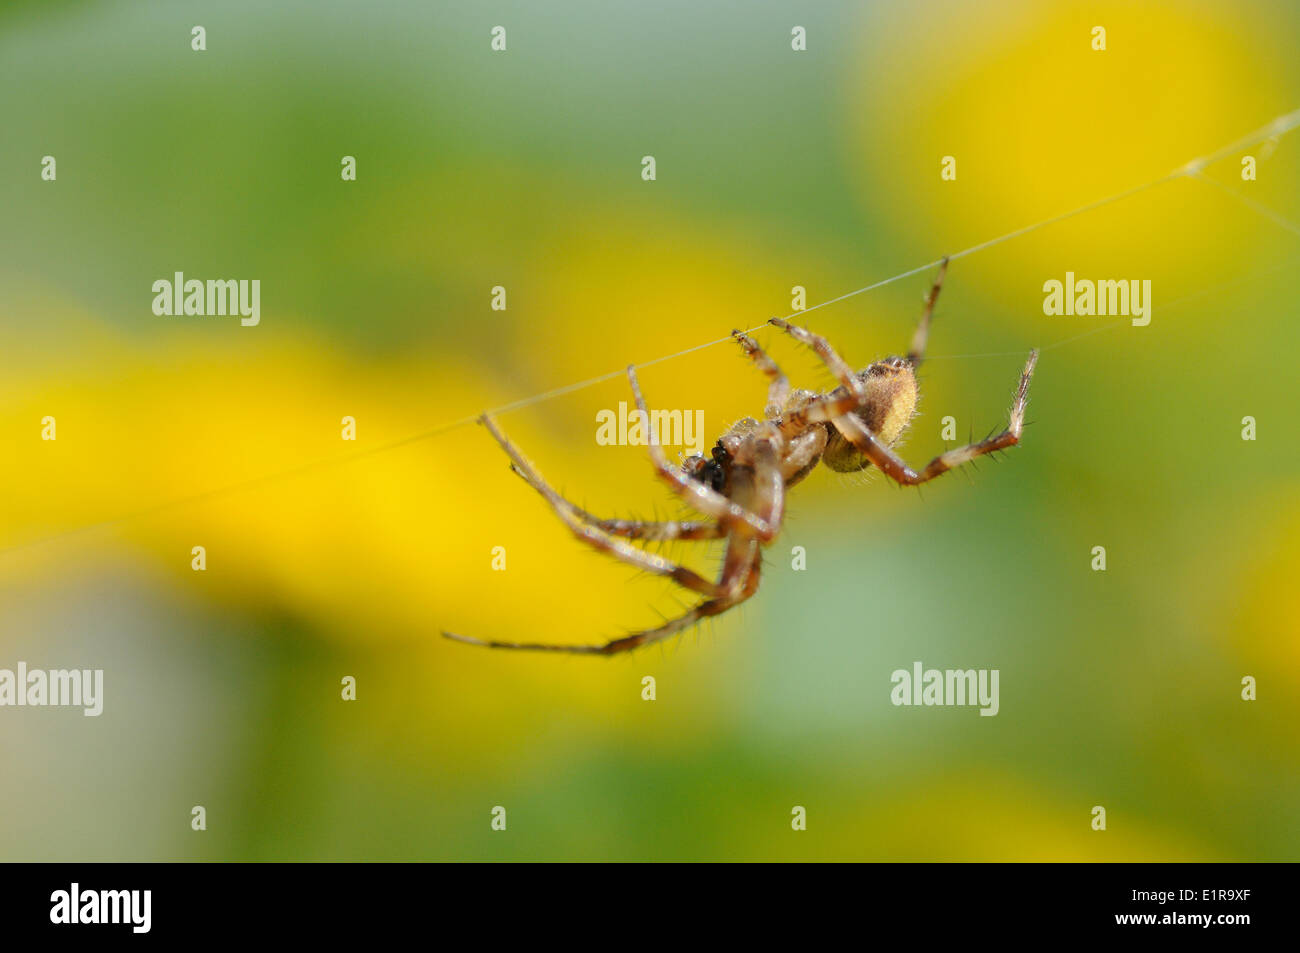 Male of the Spider Araneus quadratus perched in  web between Corn Marigold - Stock Image